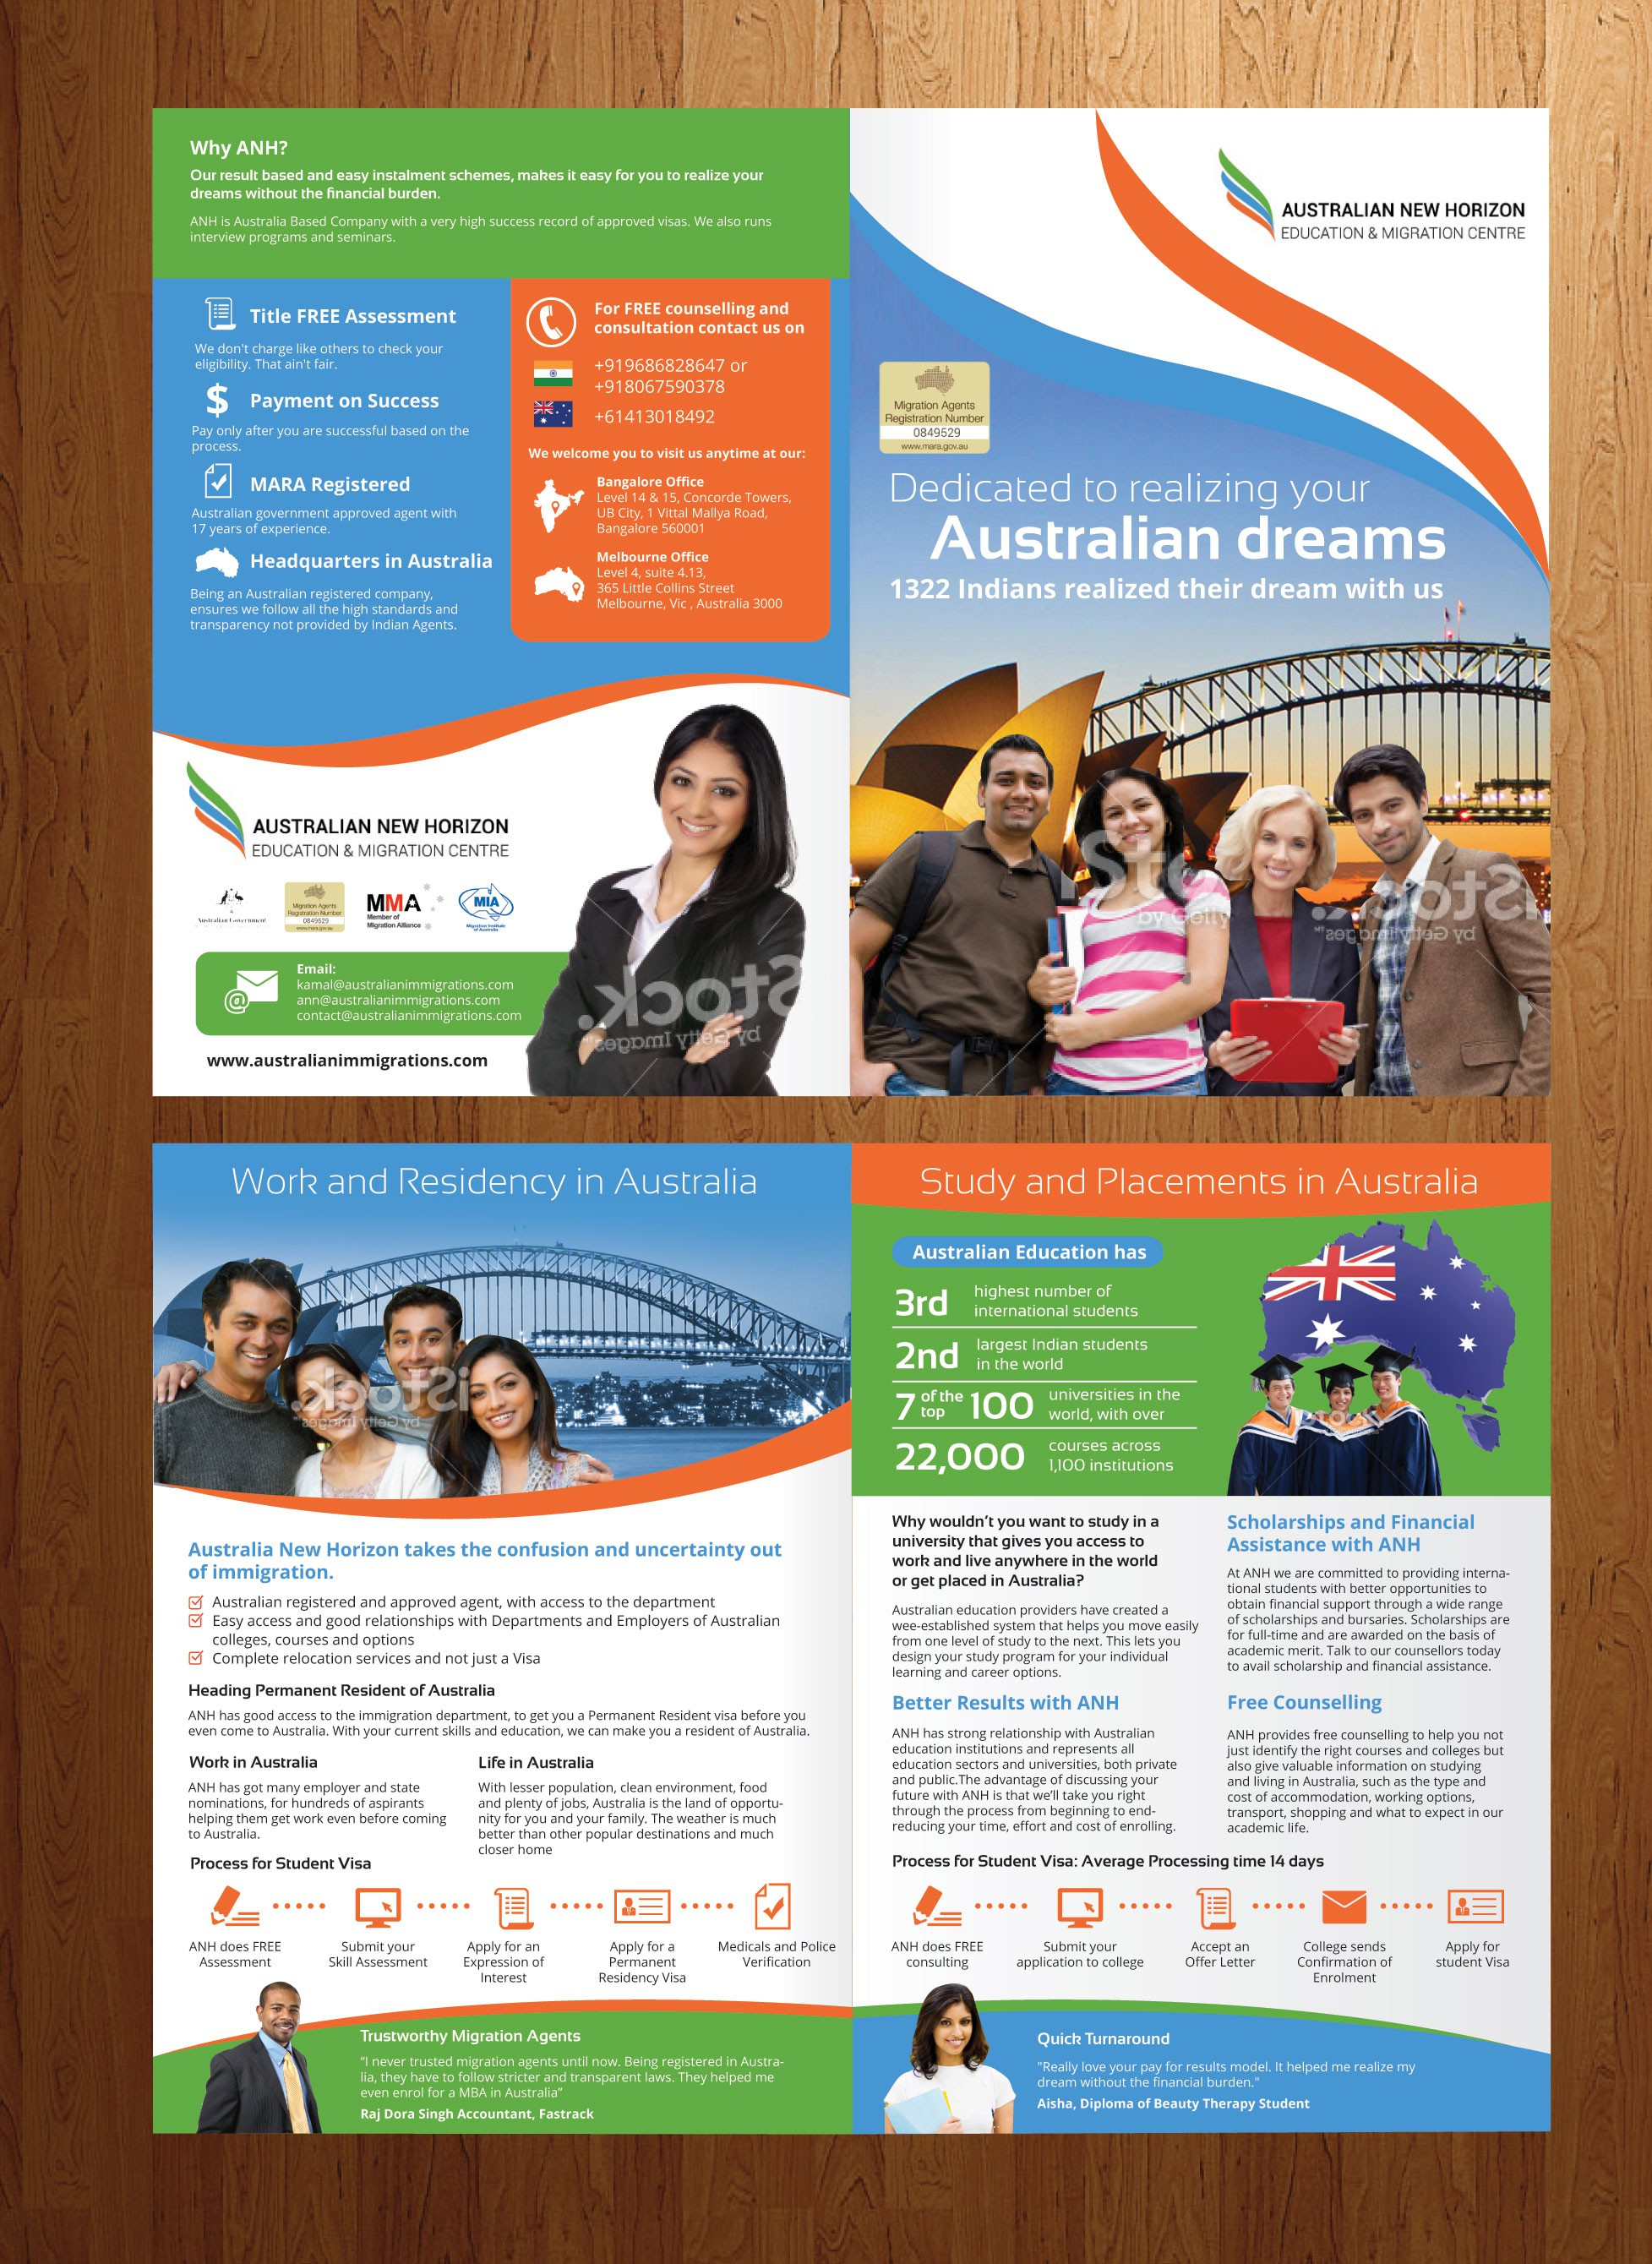 CREATE AN INSPIRING BROCHURE FOR IMMIGRATION